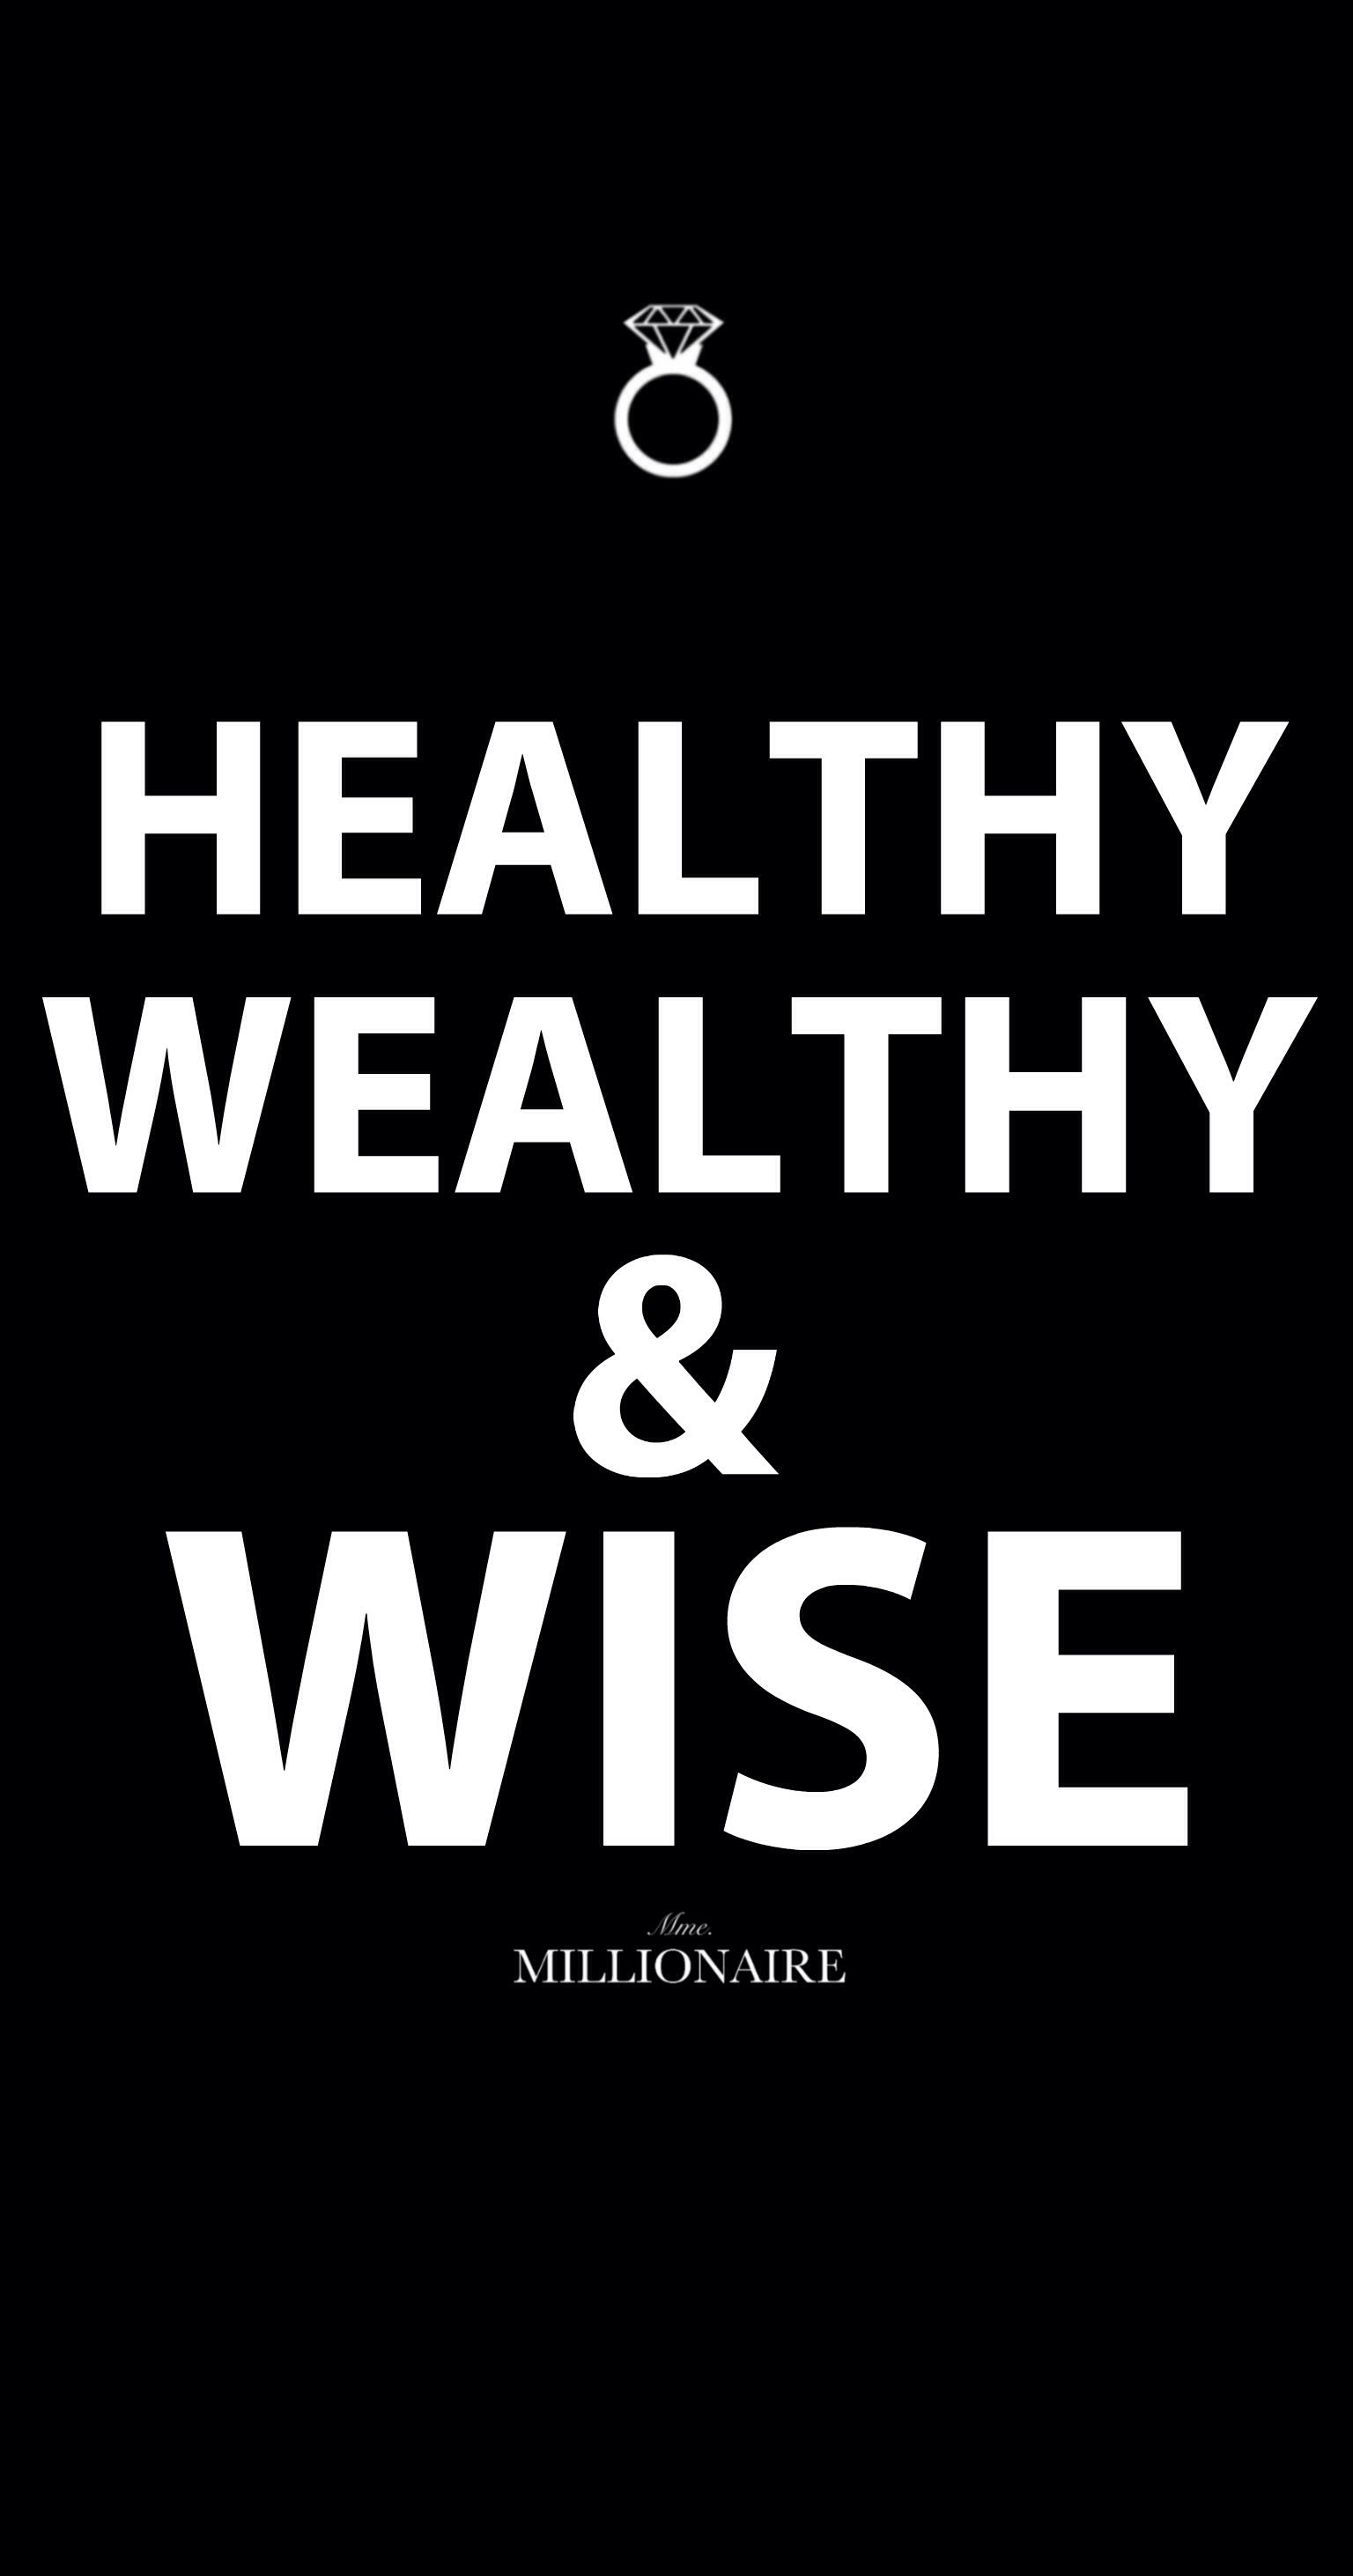 Mme. MM is healthy, wealthy and wise.